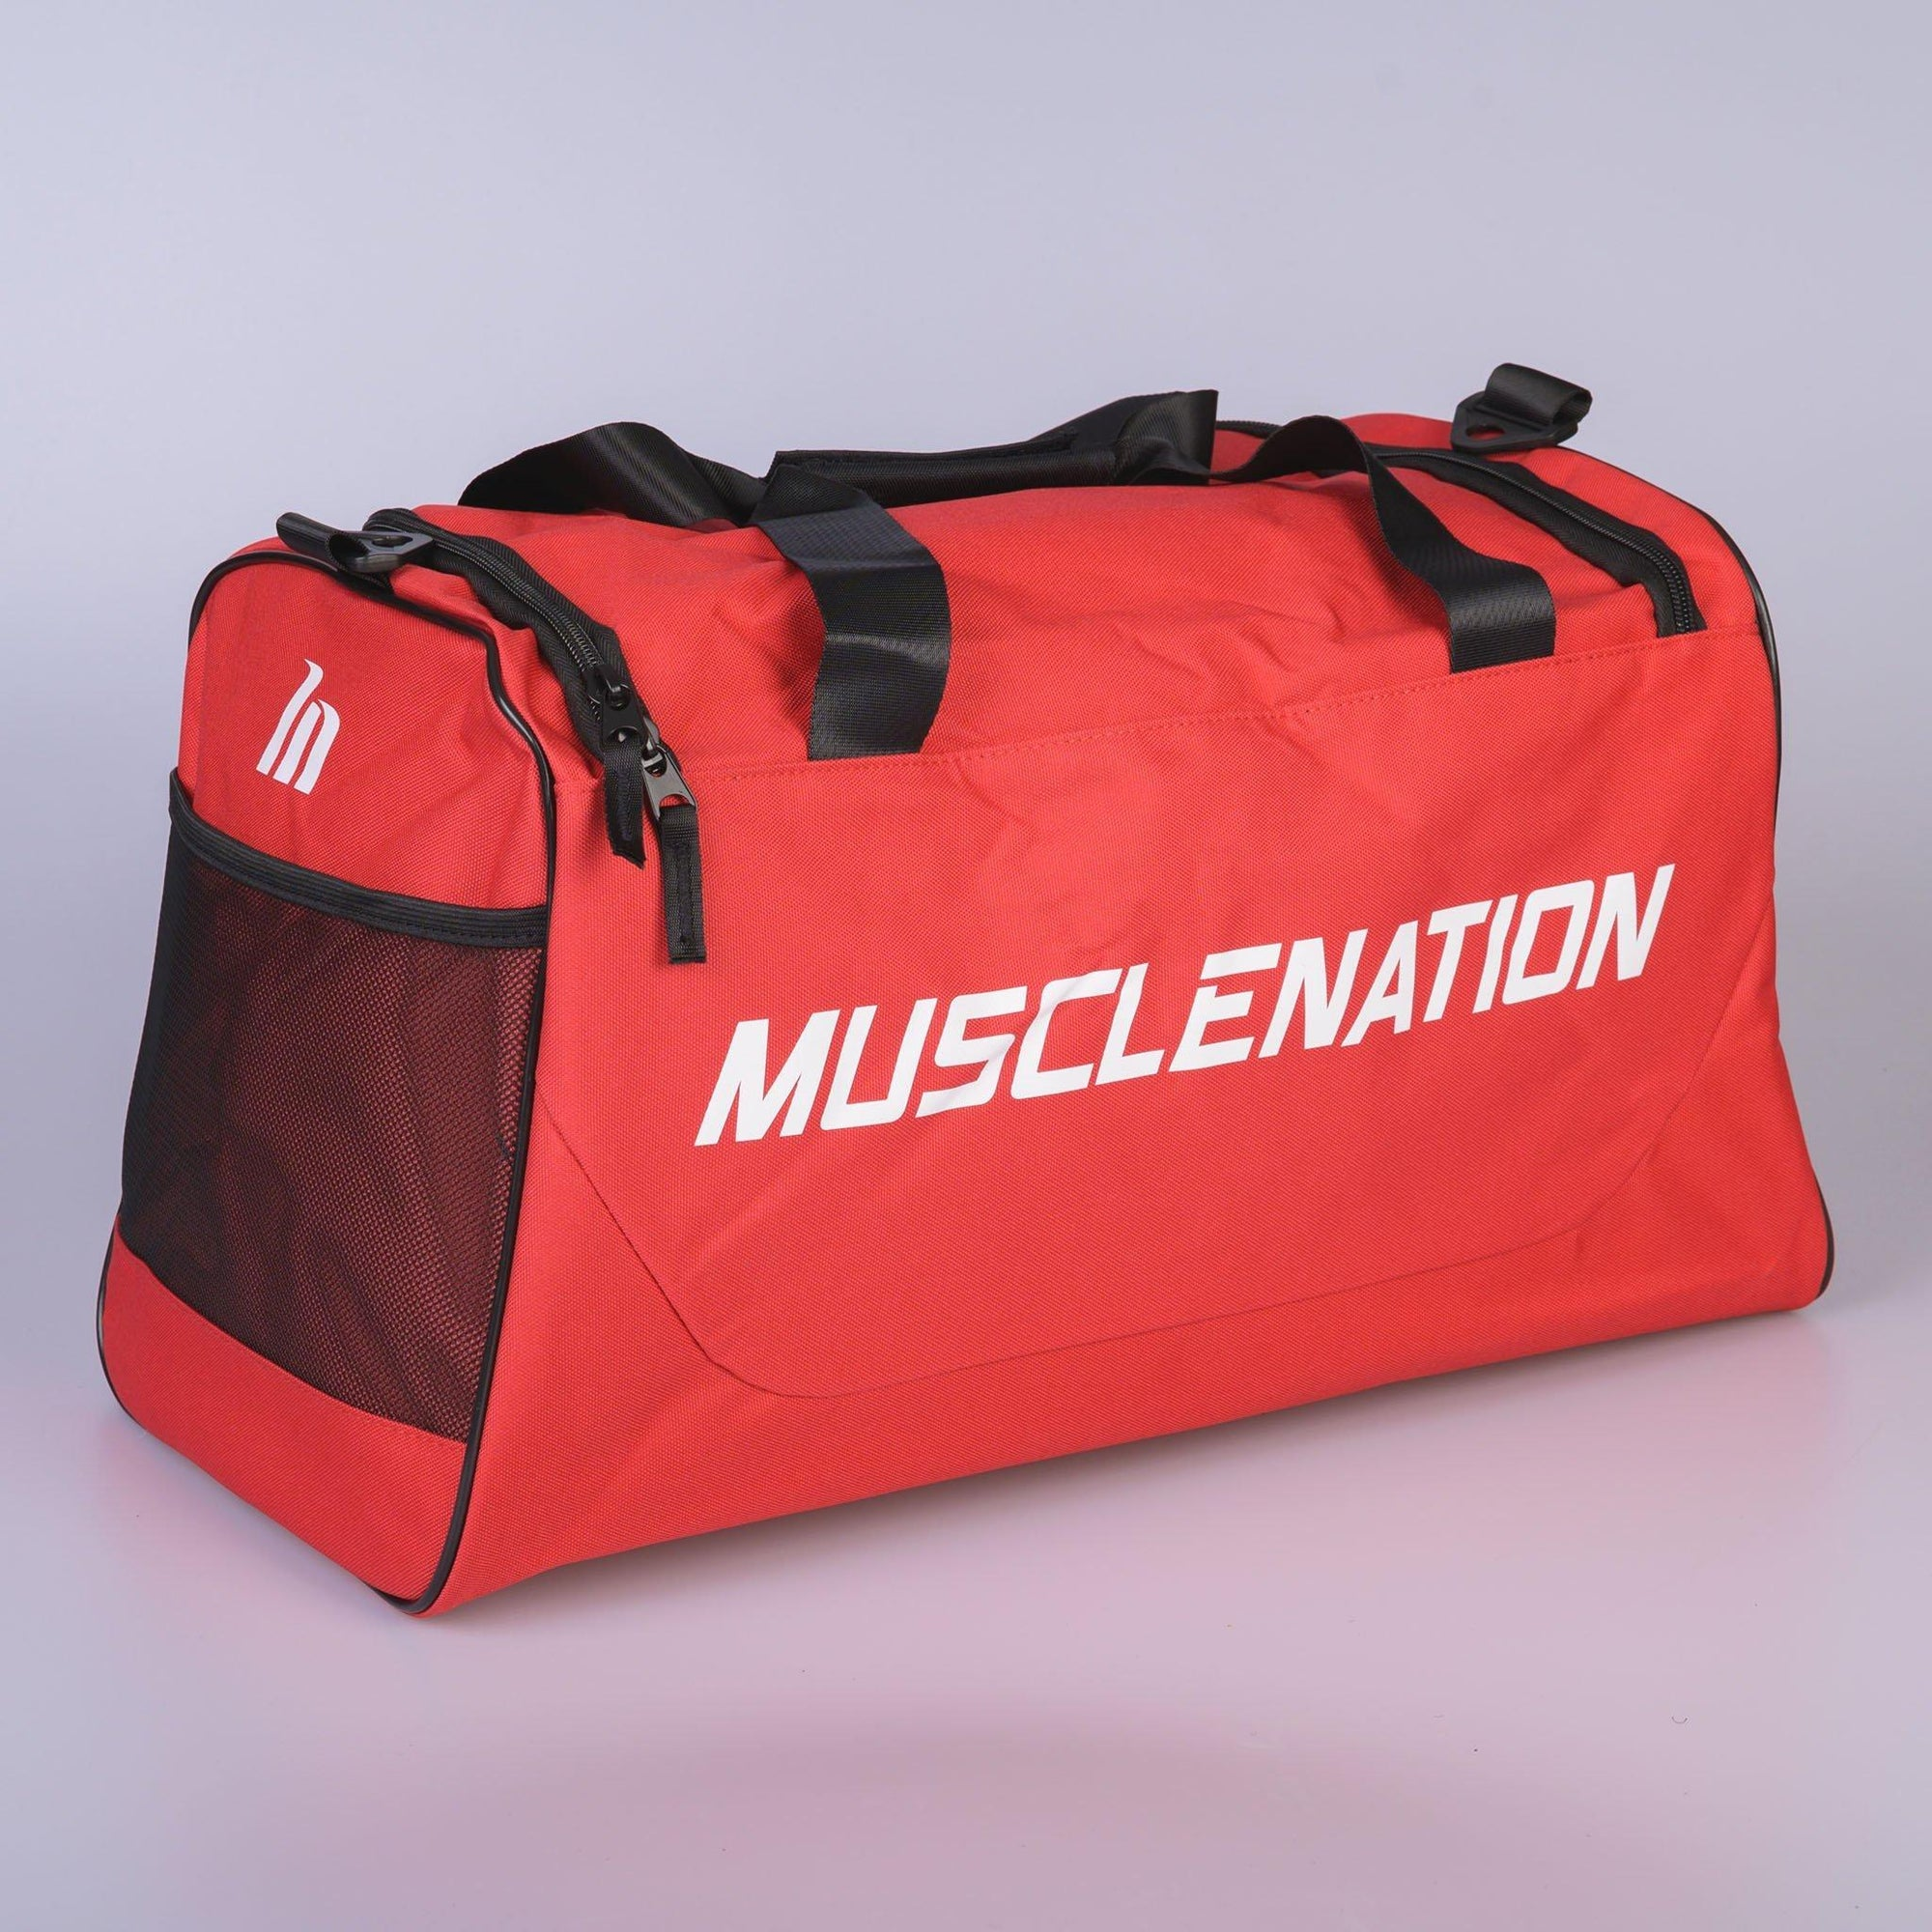 Muscle Nation Square Training Duffle Bag - Red